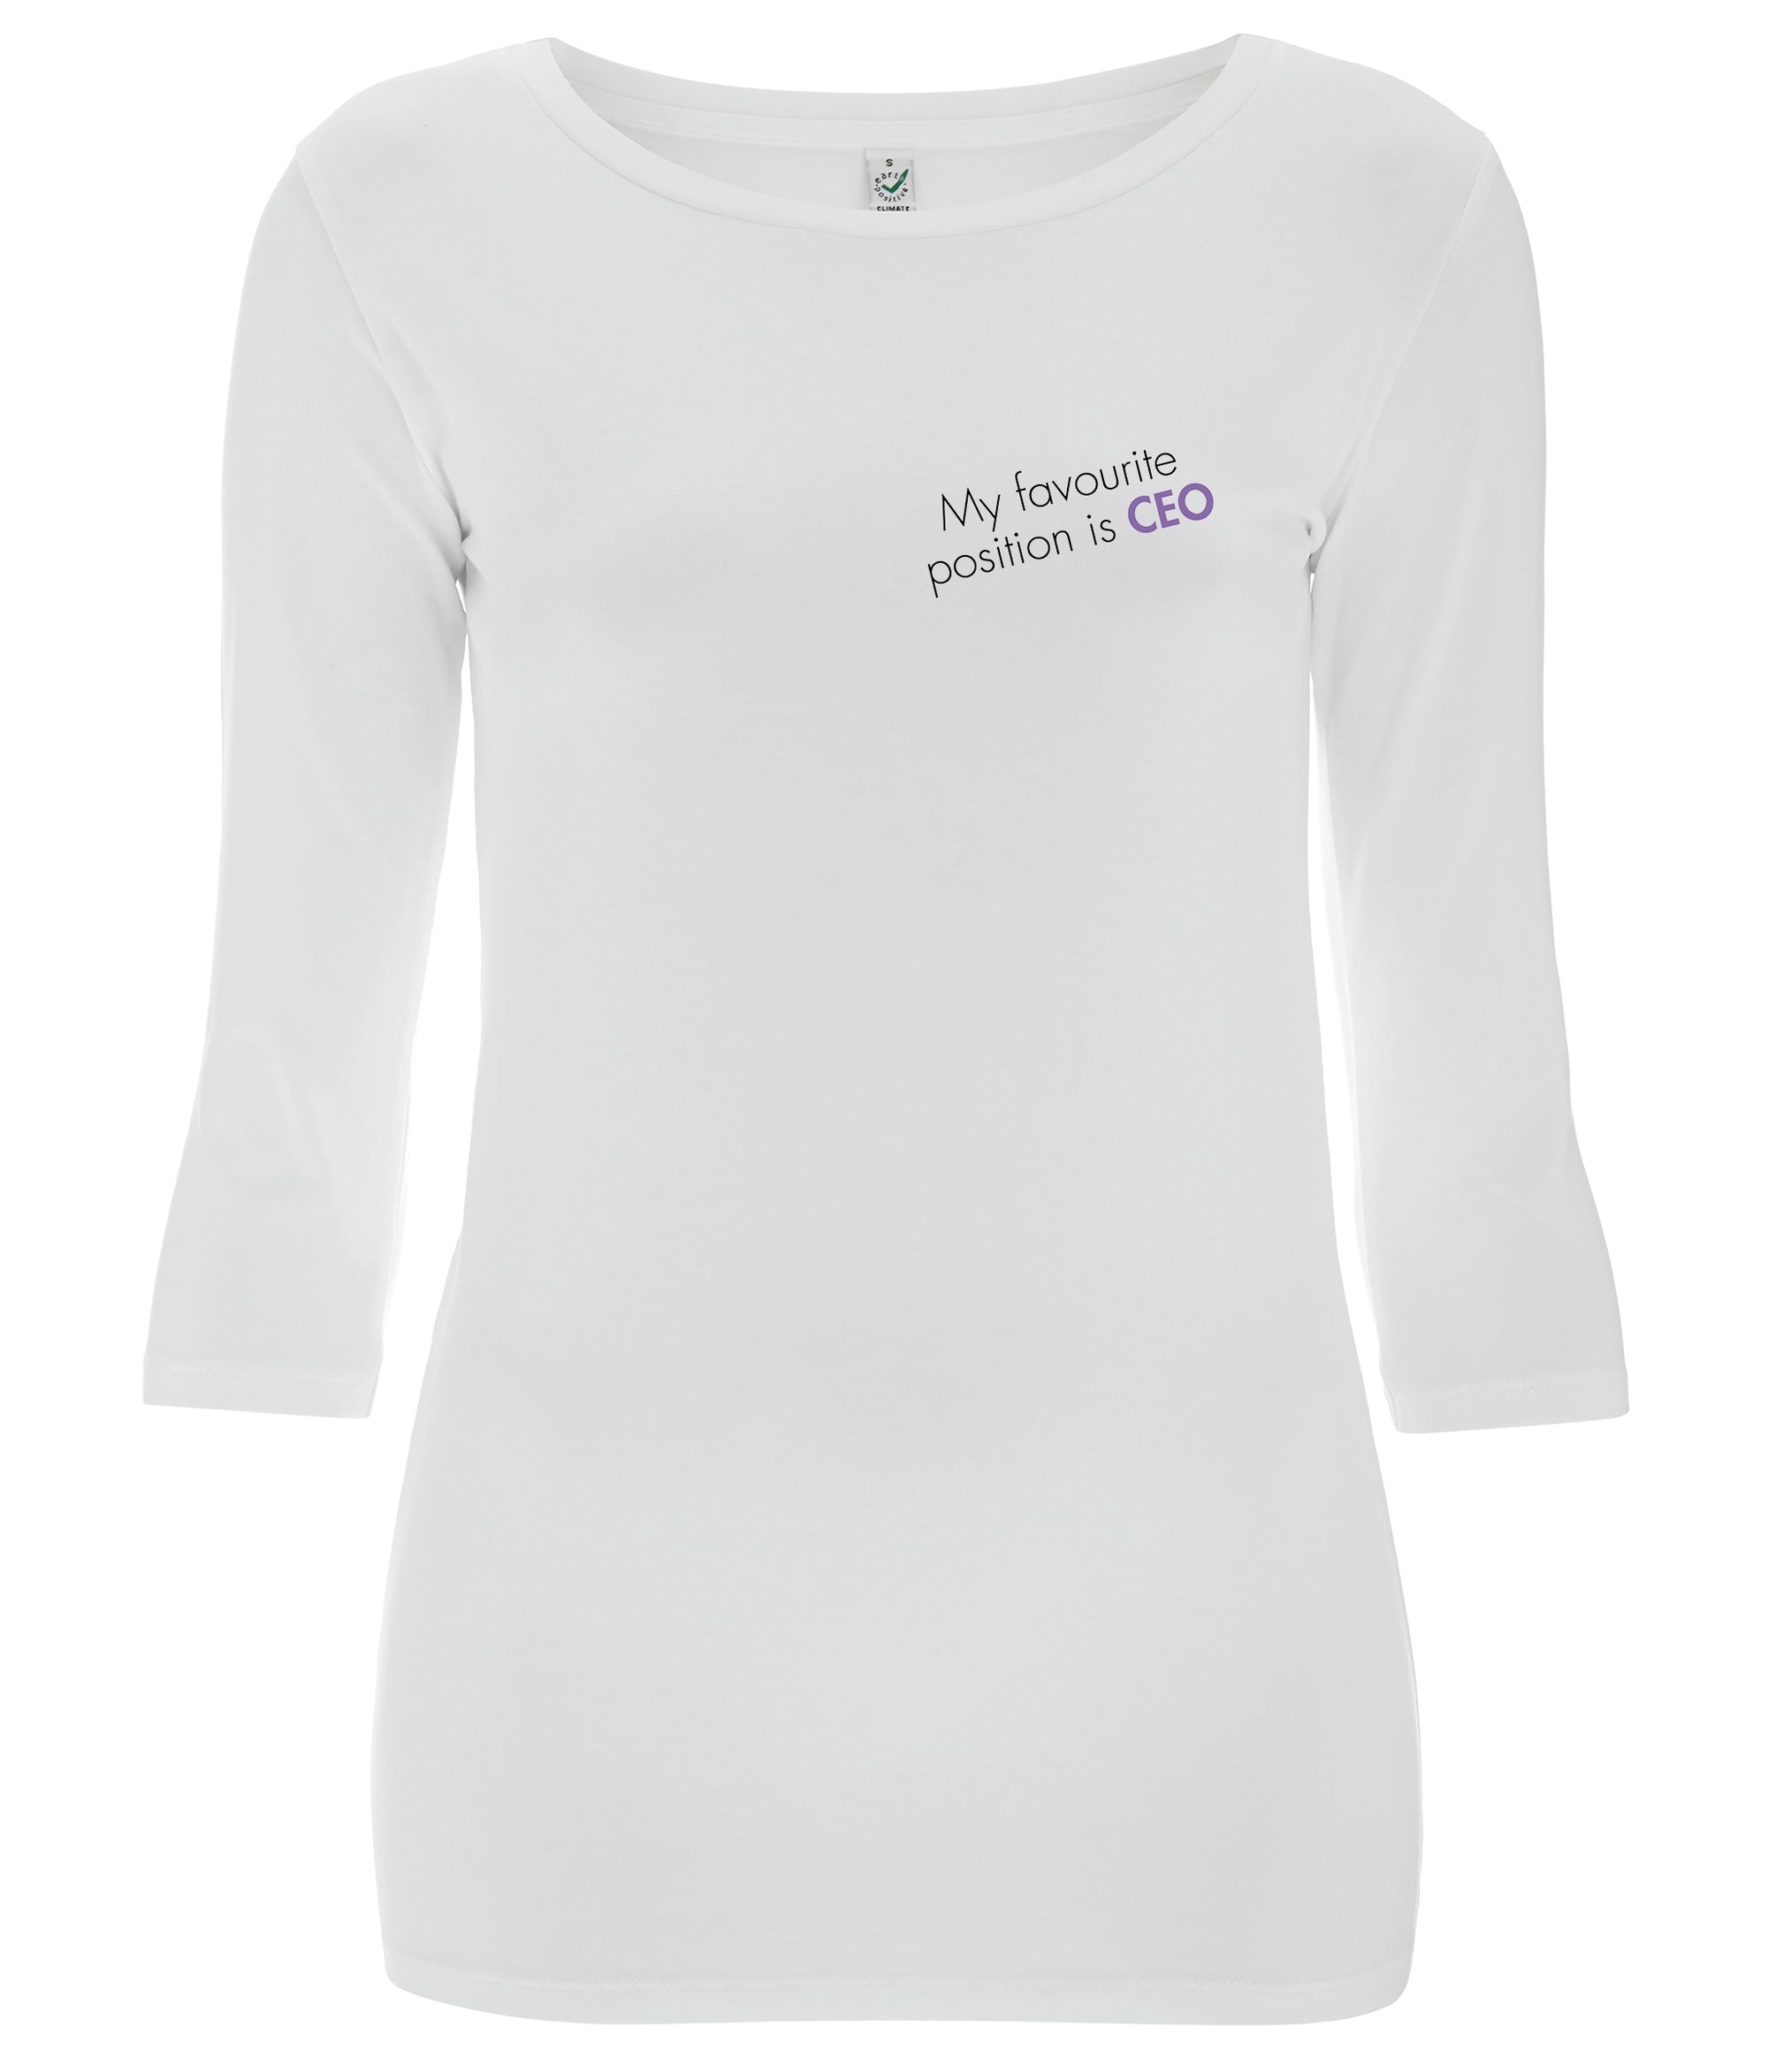 My Favourite Position Is CEO 3/4 Sleeve Organic Feminist T Shirt White